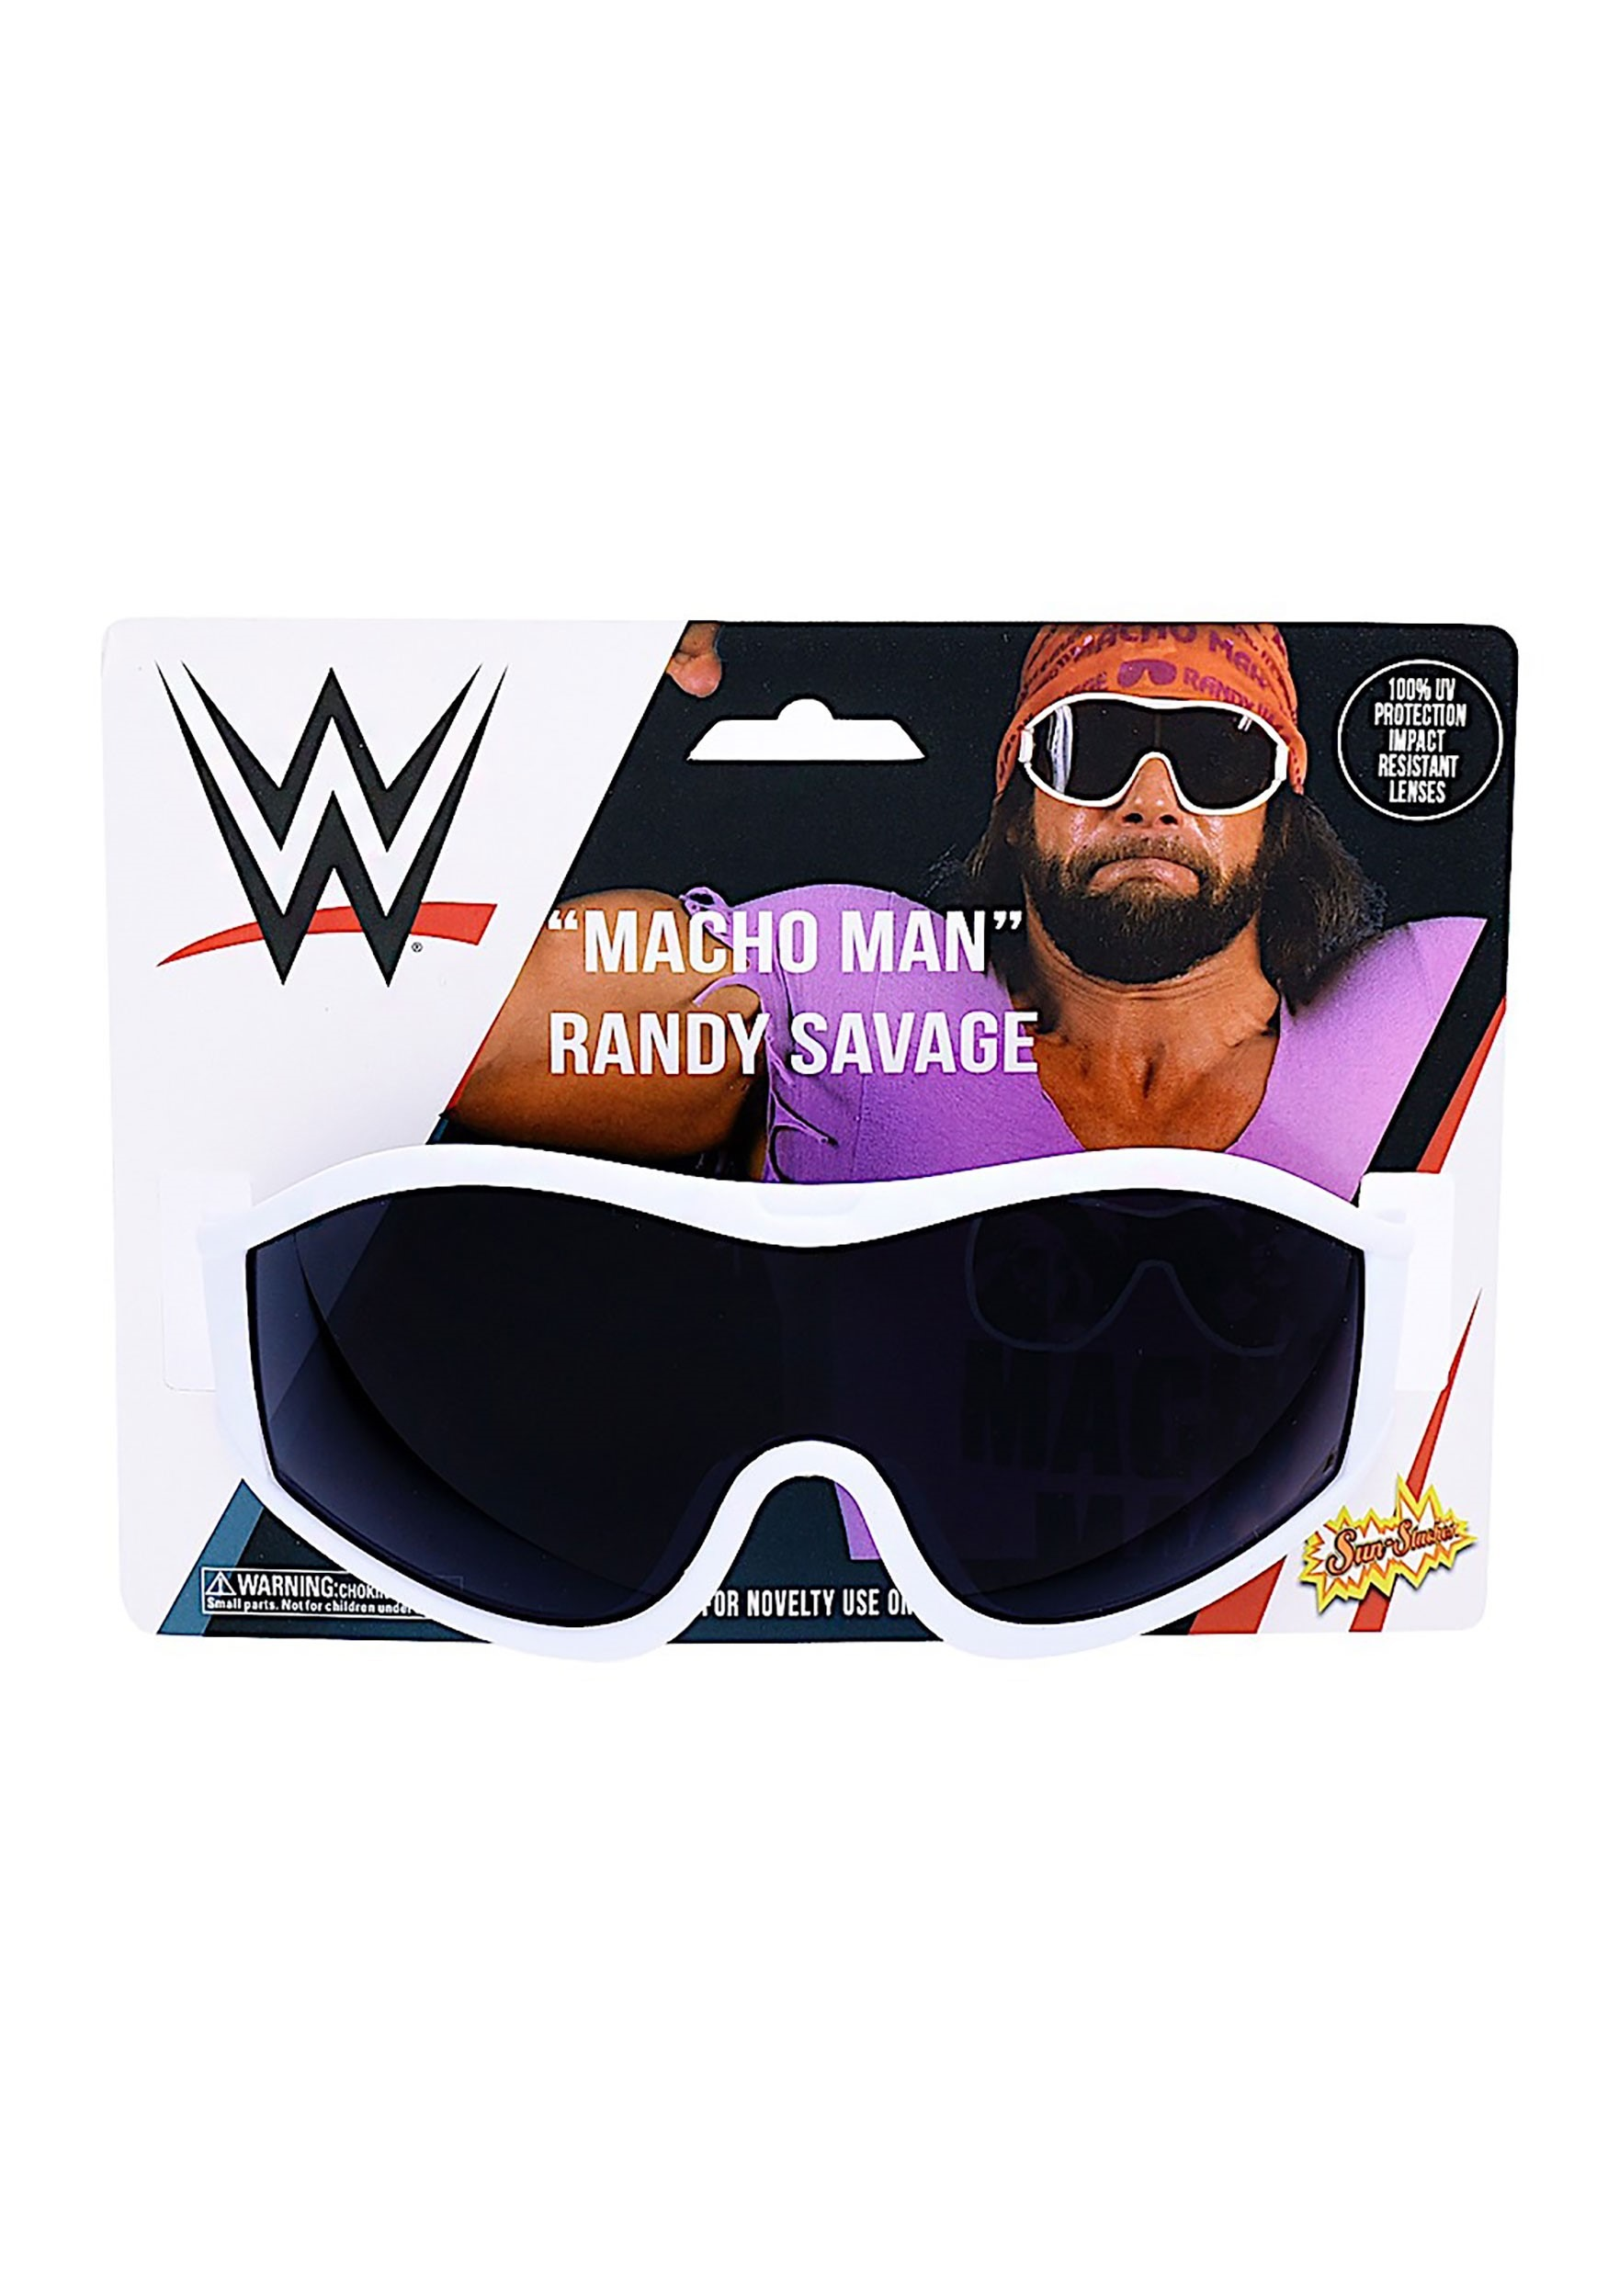 RANDY MACHO MAN SAVAGE Cover DOUBLE Light Switch Plate